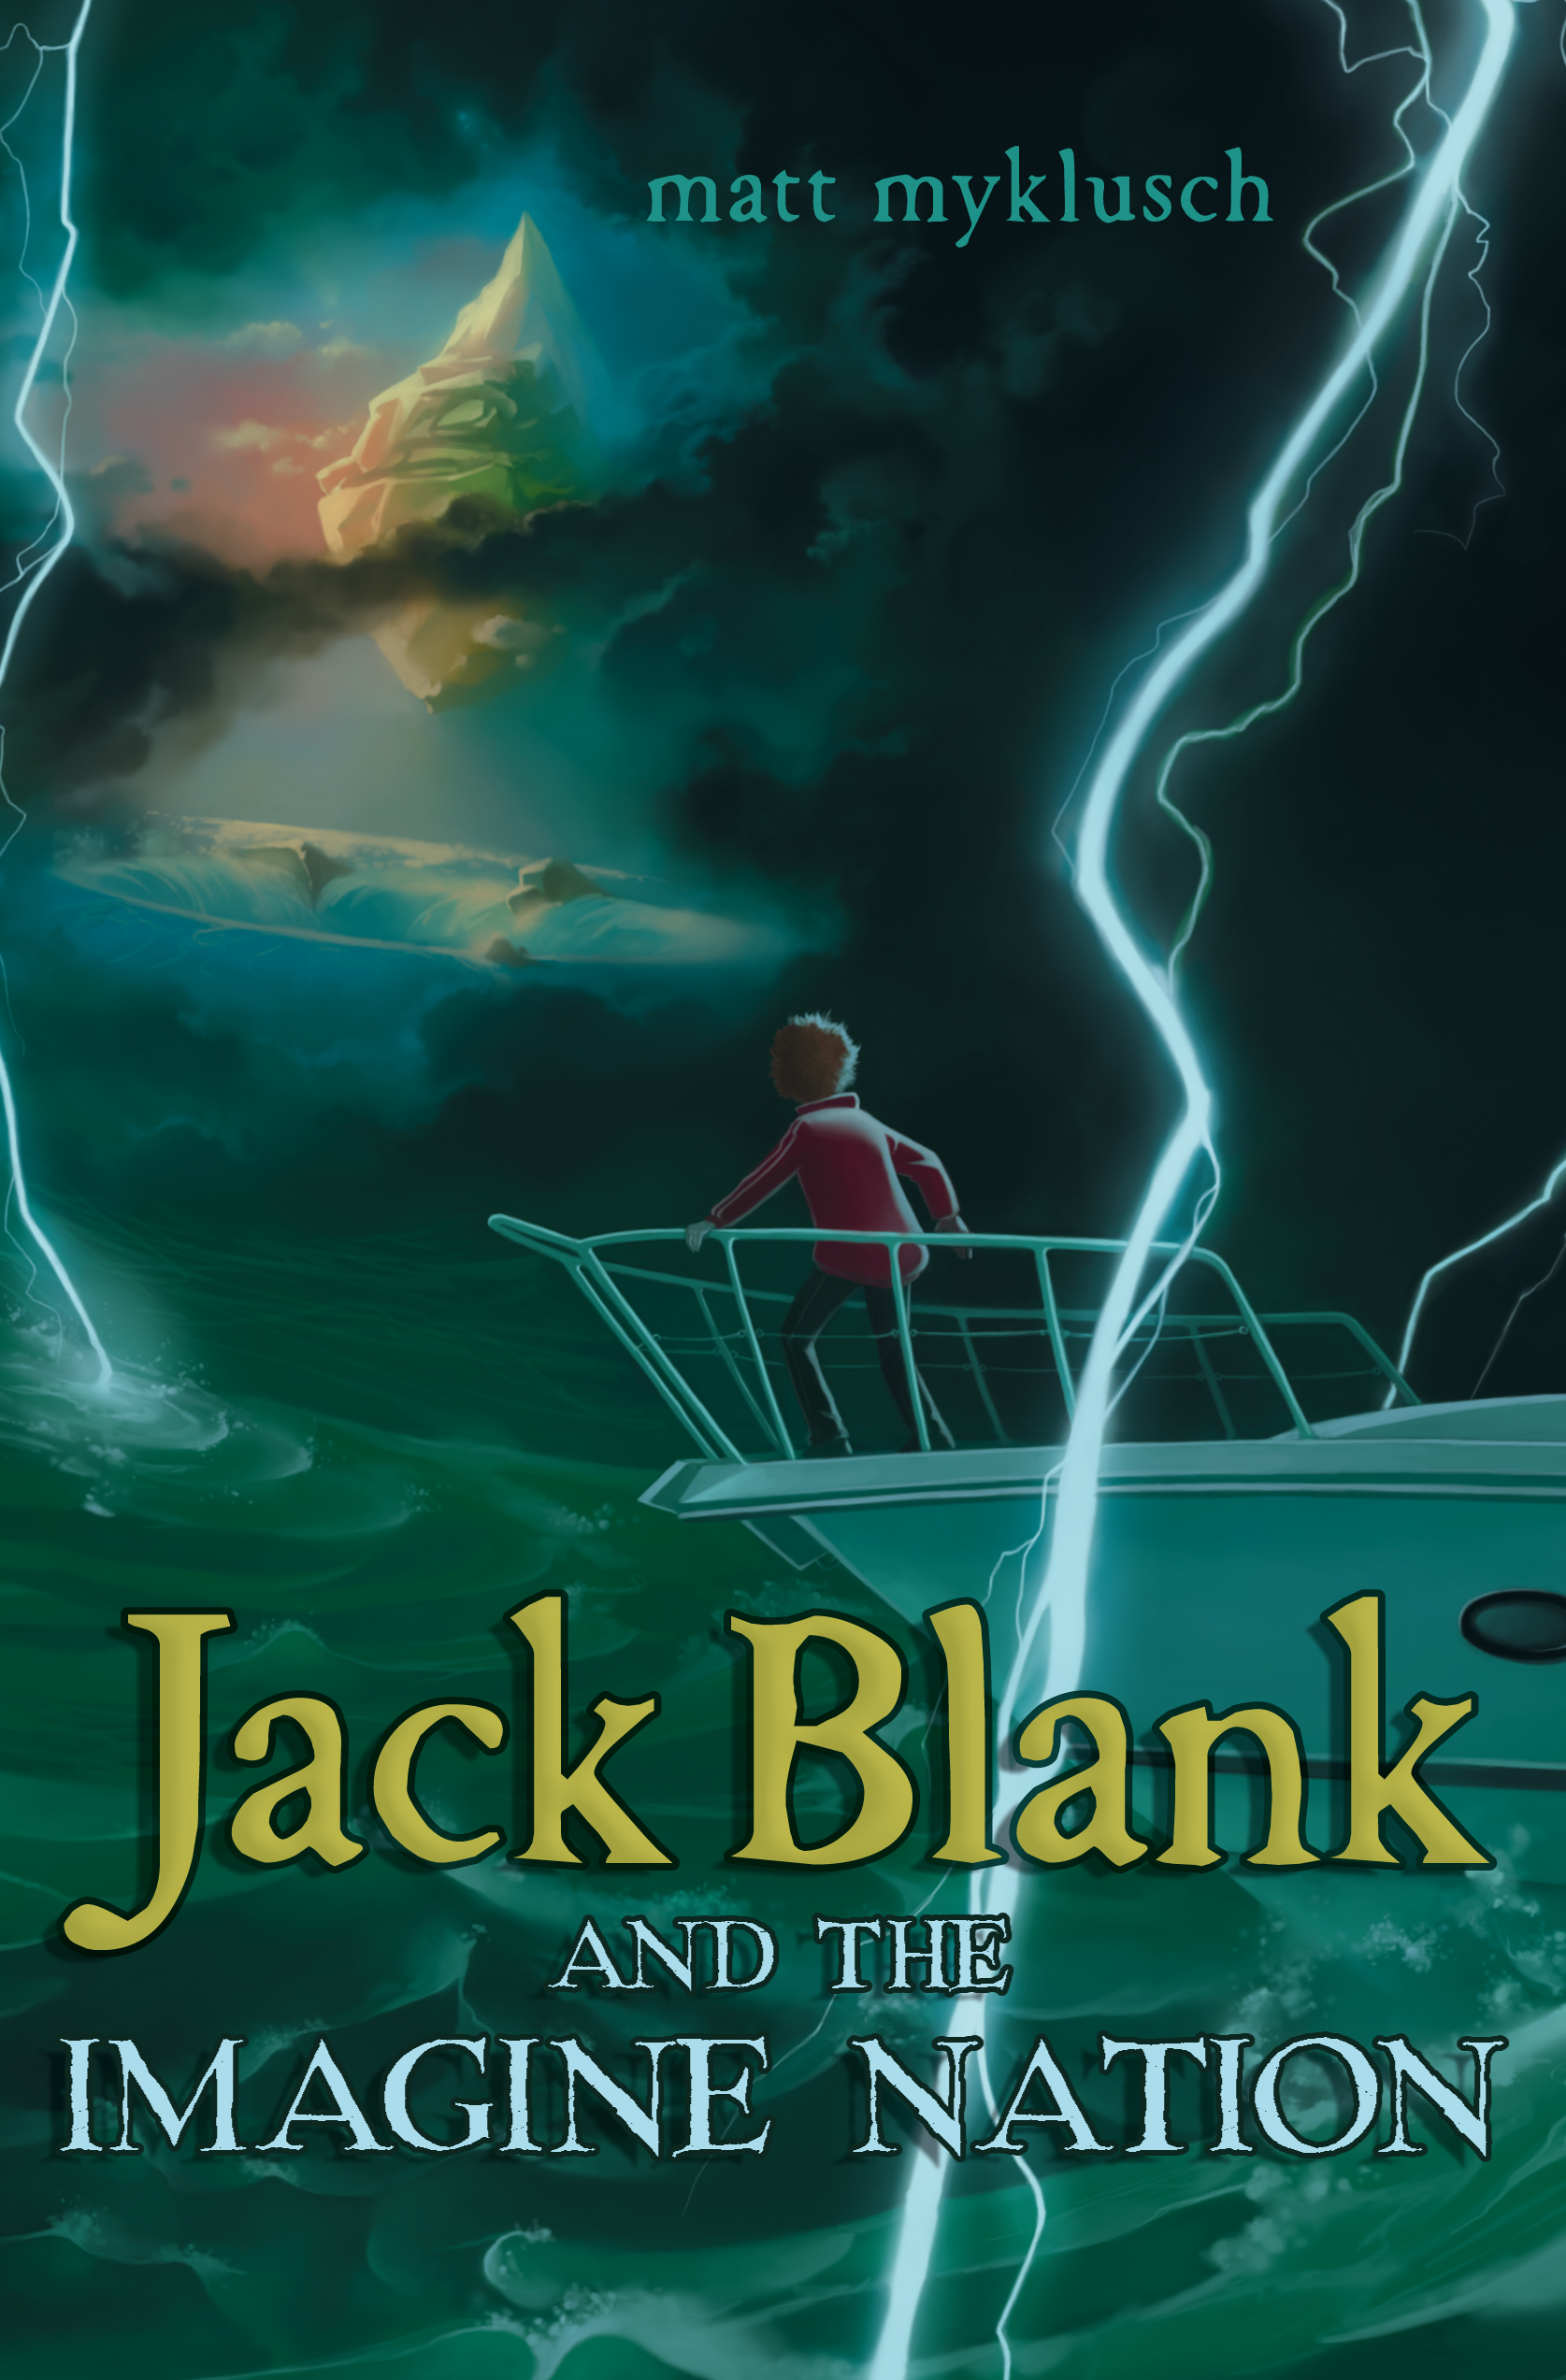 Jack Blank And The Imagine Nation  Book By Matt Myklusch  Official  Publisher Page  Simon & Schuster